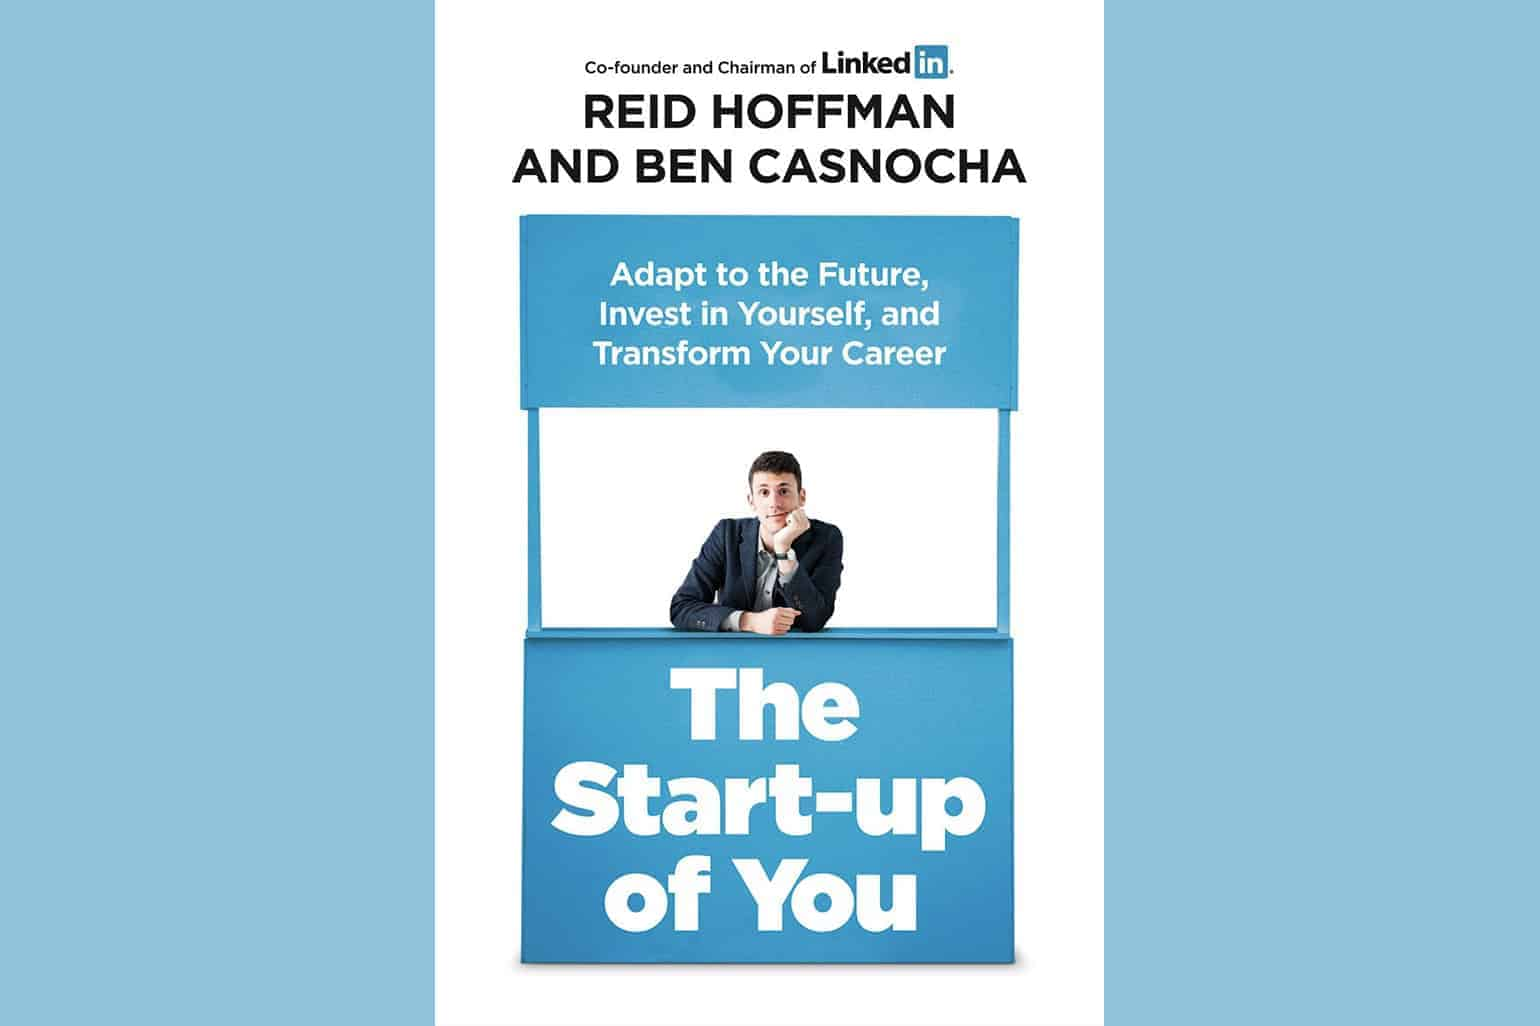 The Start Up Of You Adapt To The Future Invest In Yourself And Transform Your Career By Reid Hoffman And Ben Casnocha